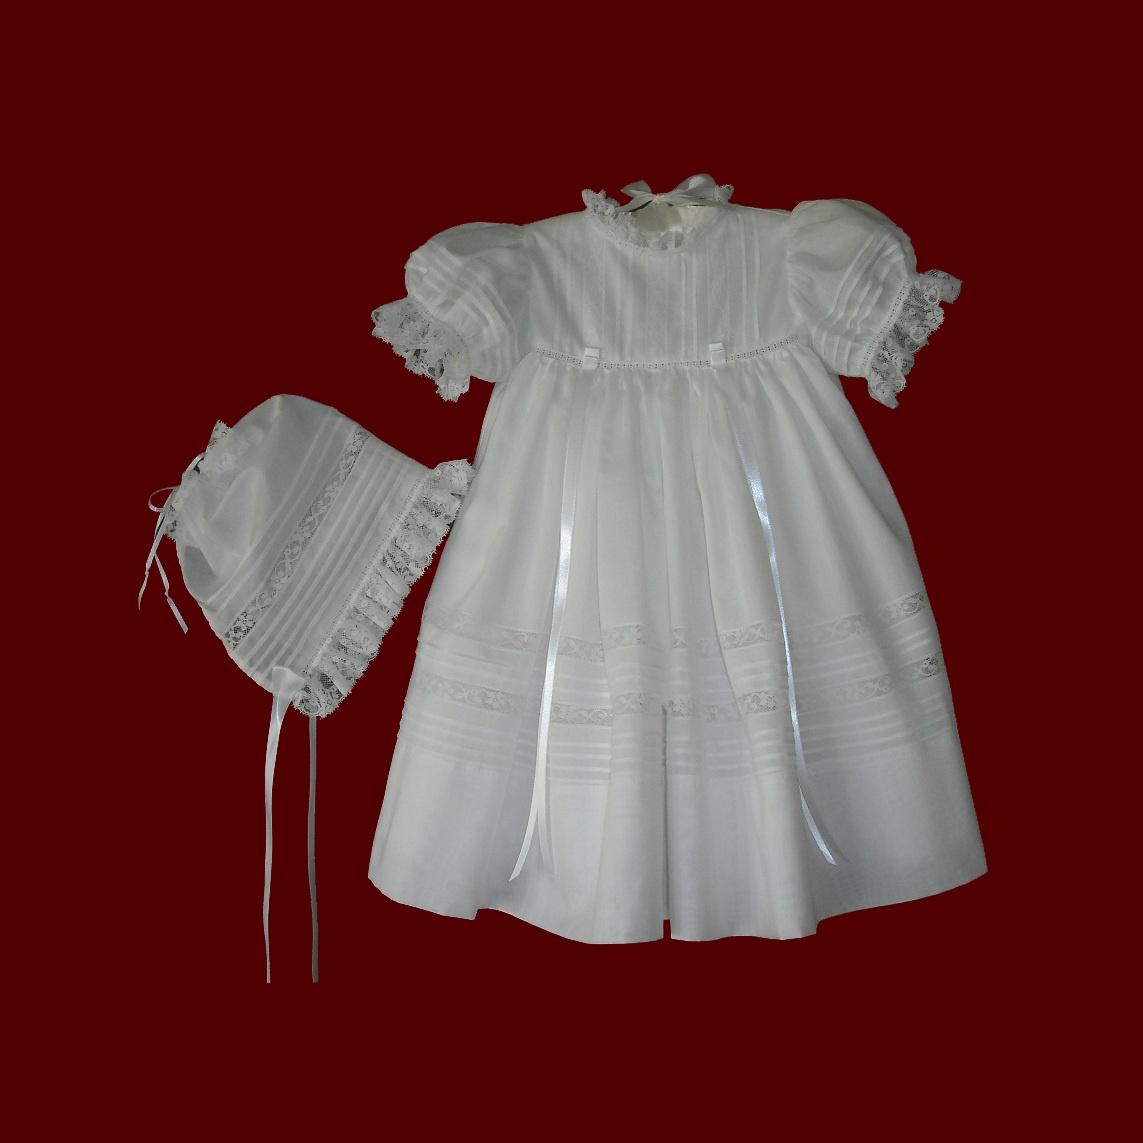 Heirloom Swiss Batiste Christening Dress & Bonnet